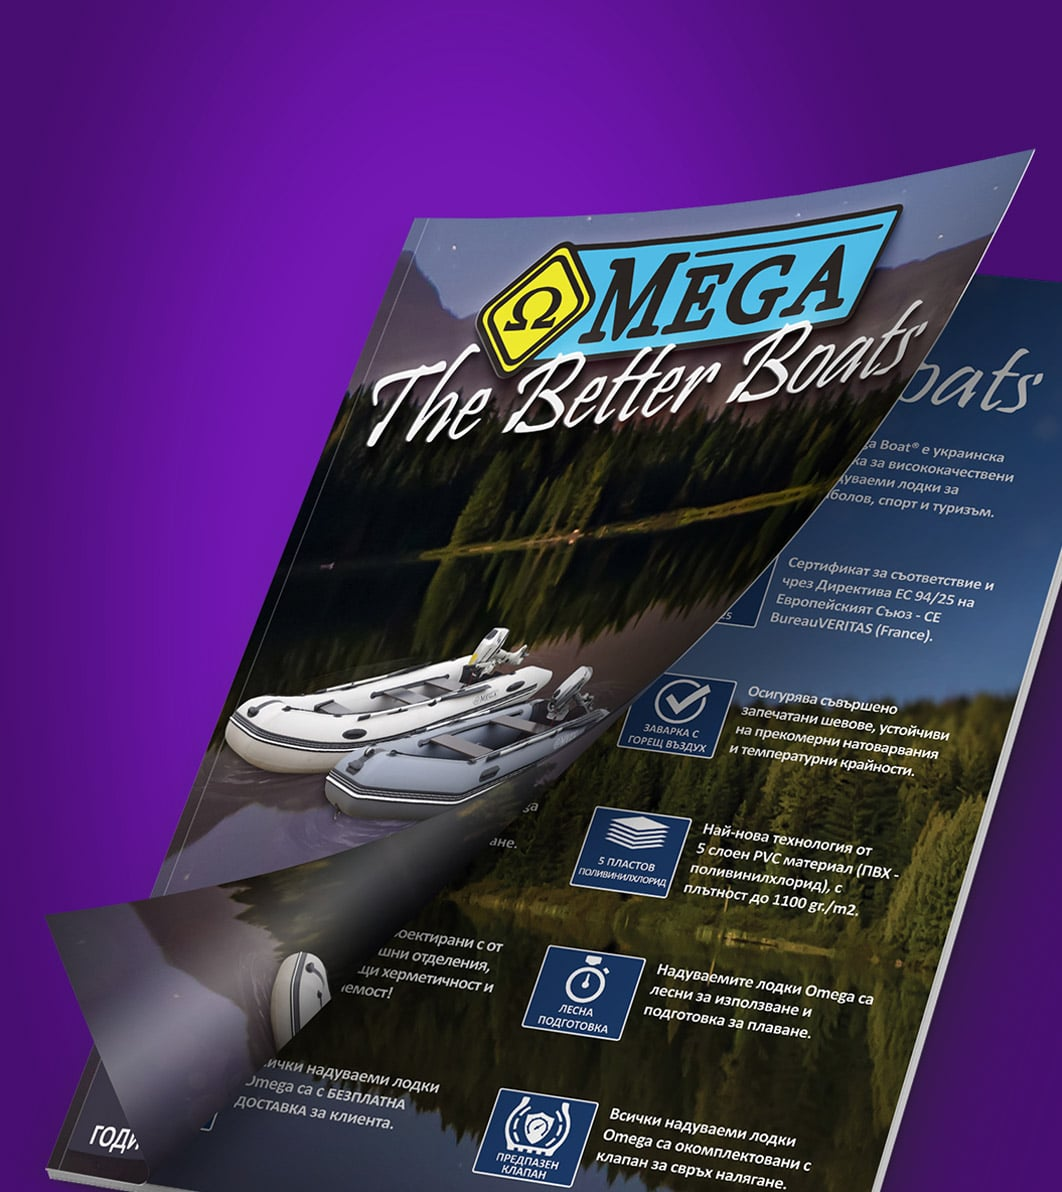 Omega Boats catalogue design by AdwayCreative